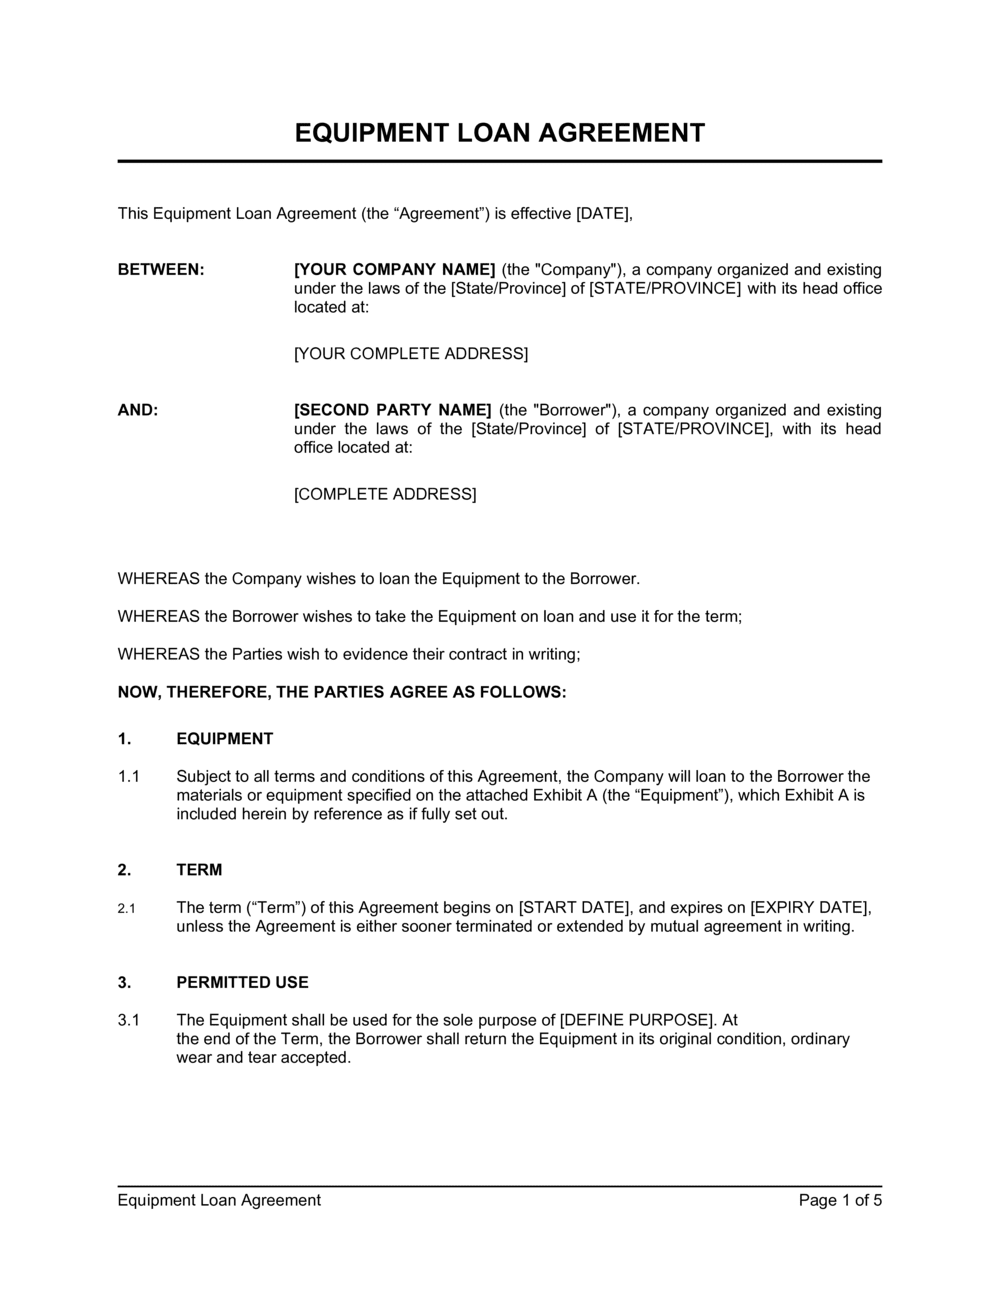 Business-in-a-Box's Equipment Loan Agreement Template